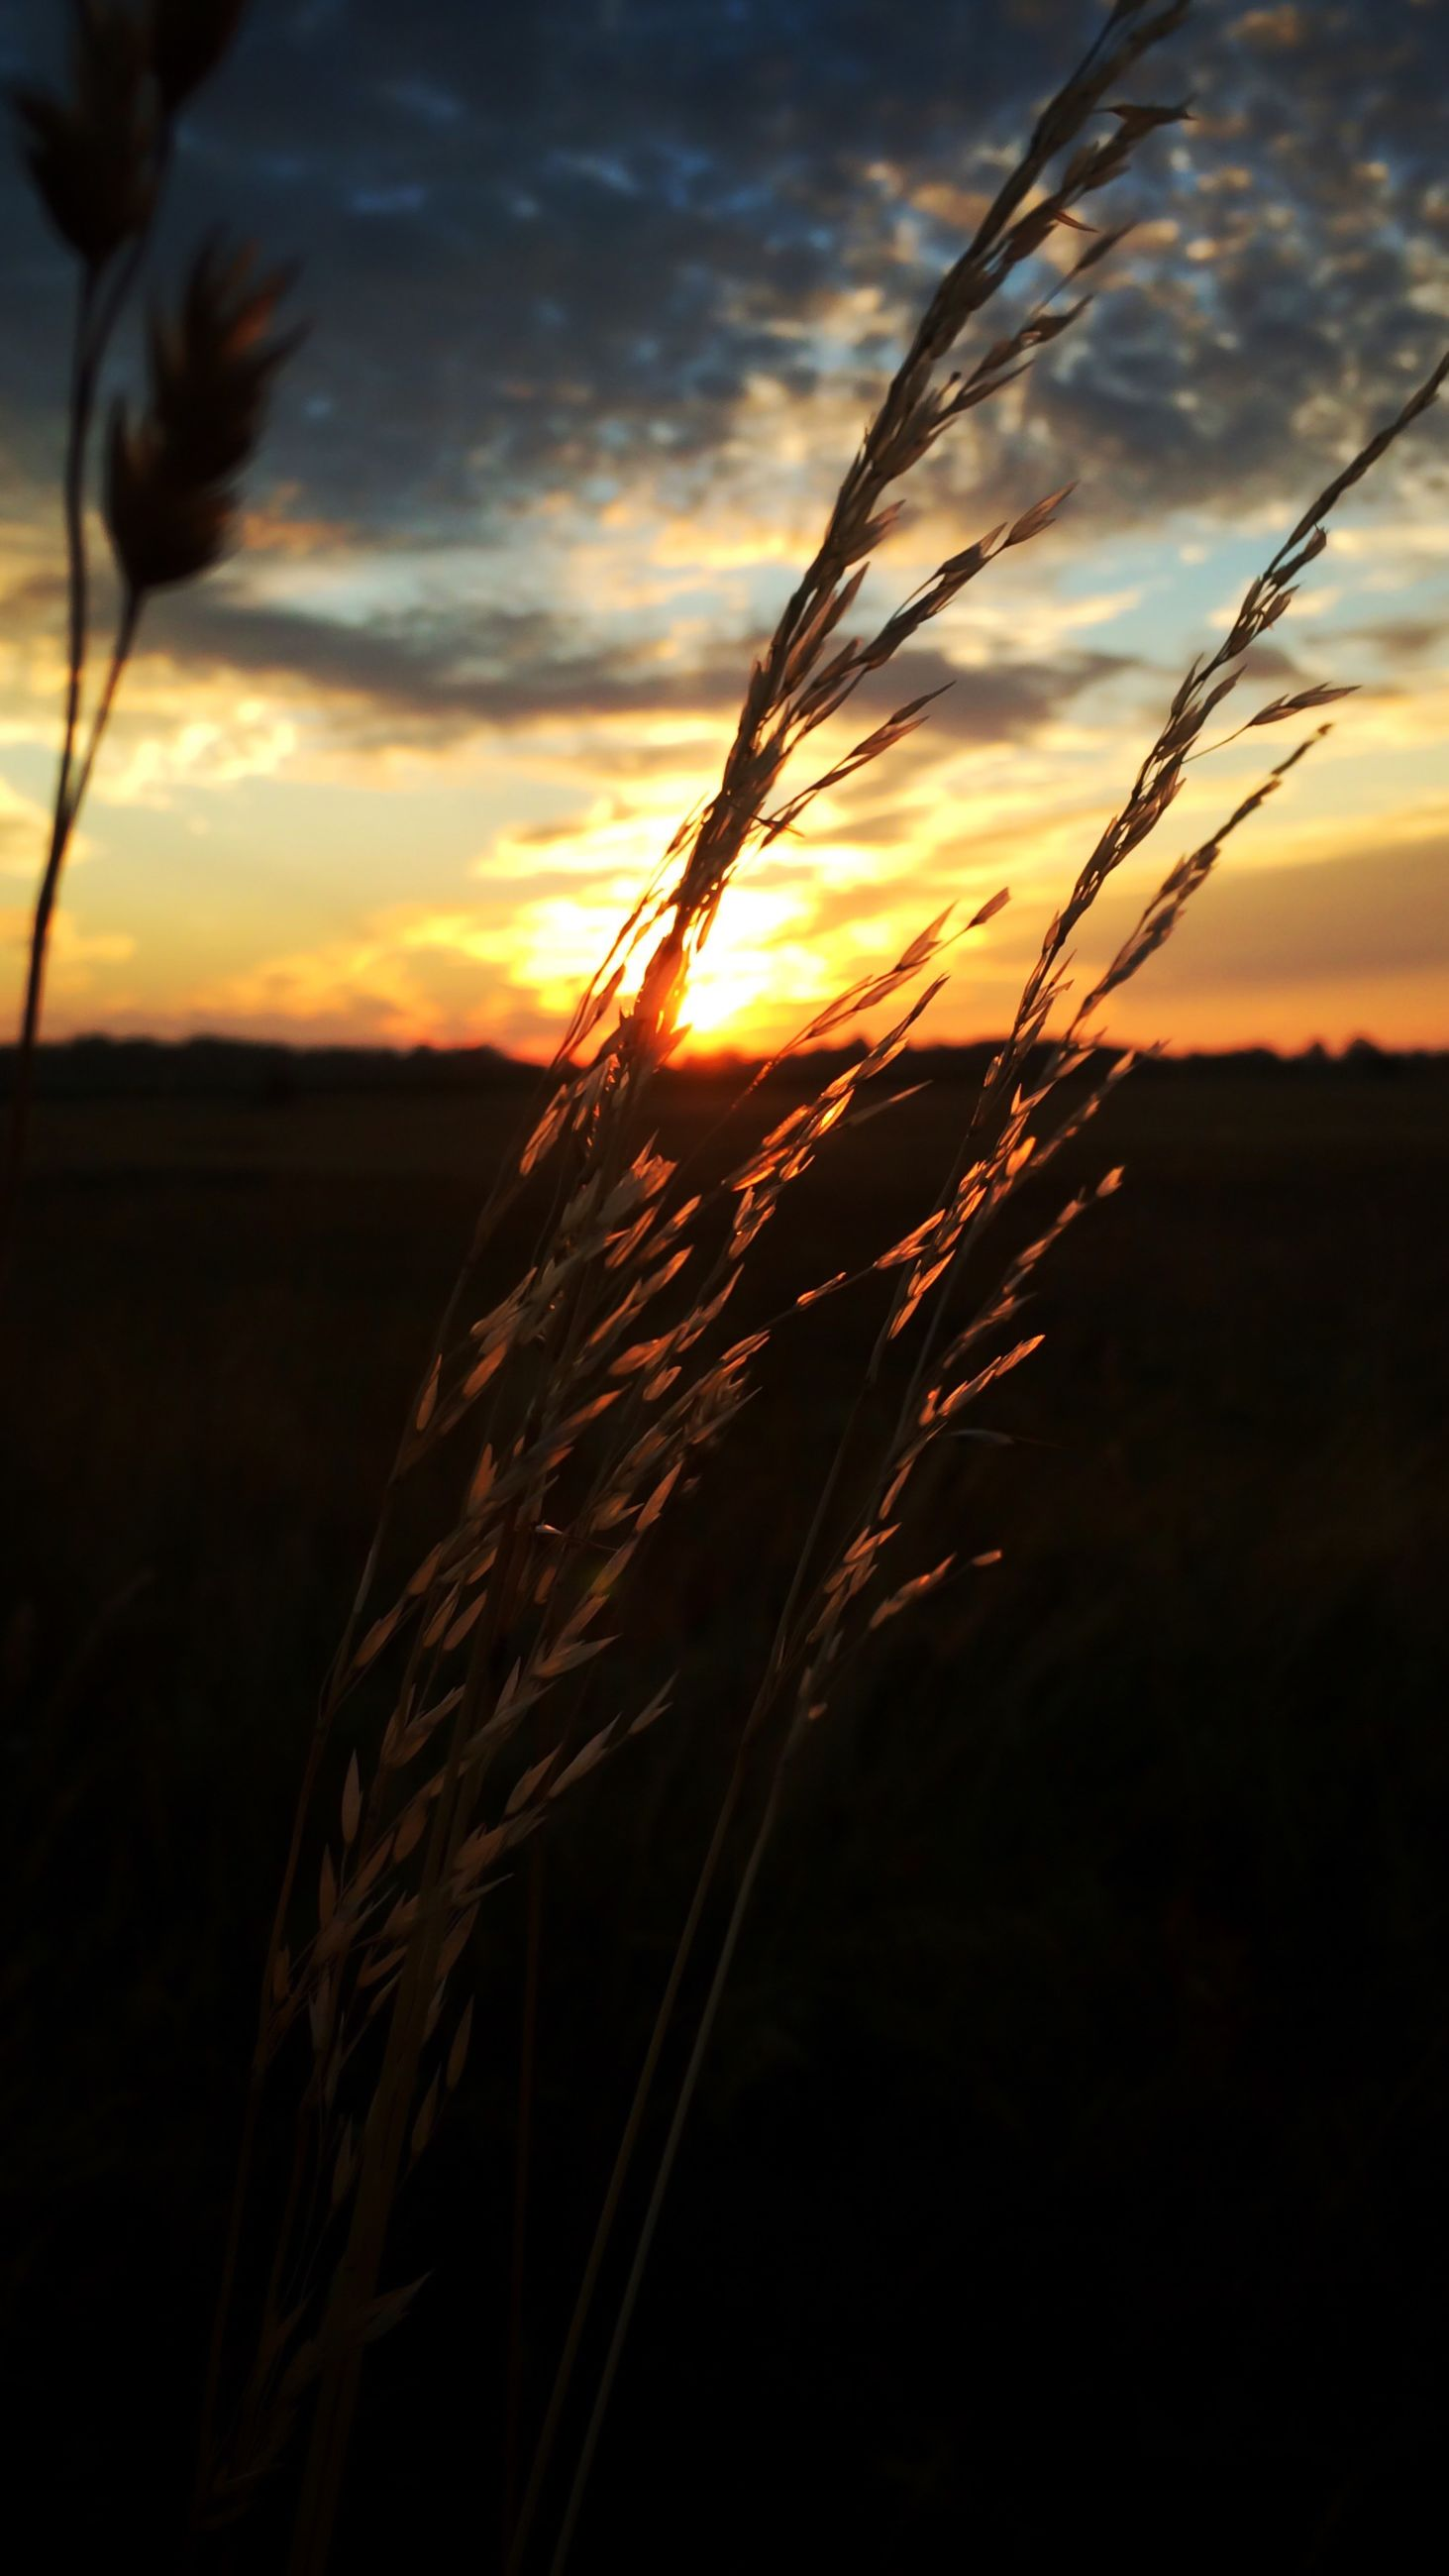 sunset, sky, beauty in nature, tranquility, nature, tranquil scene, scenics, plant, silhouette, growth, field, stalk, grass, cloud - sky, cloud, orange color, close-up, focus on foreground, idyllic, landscape